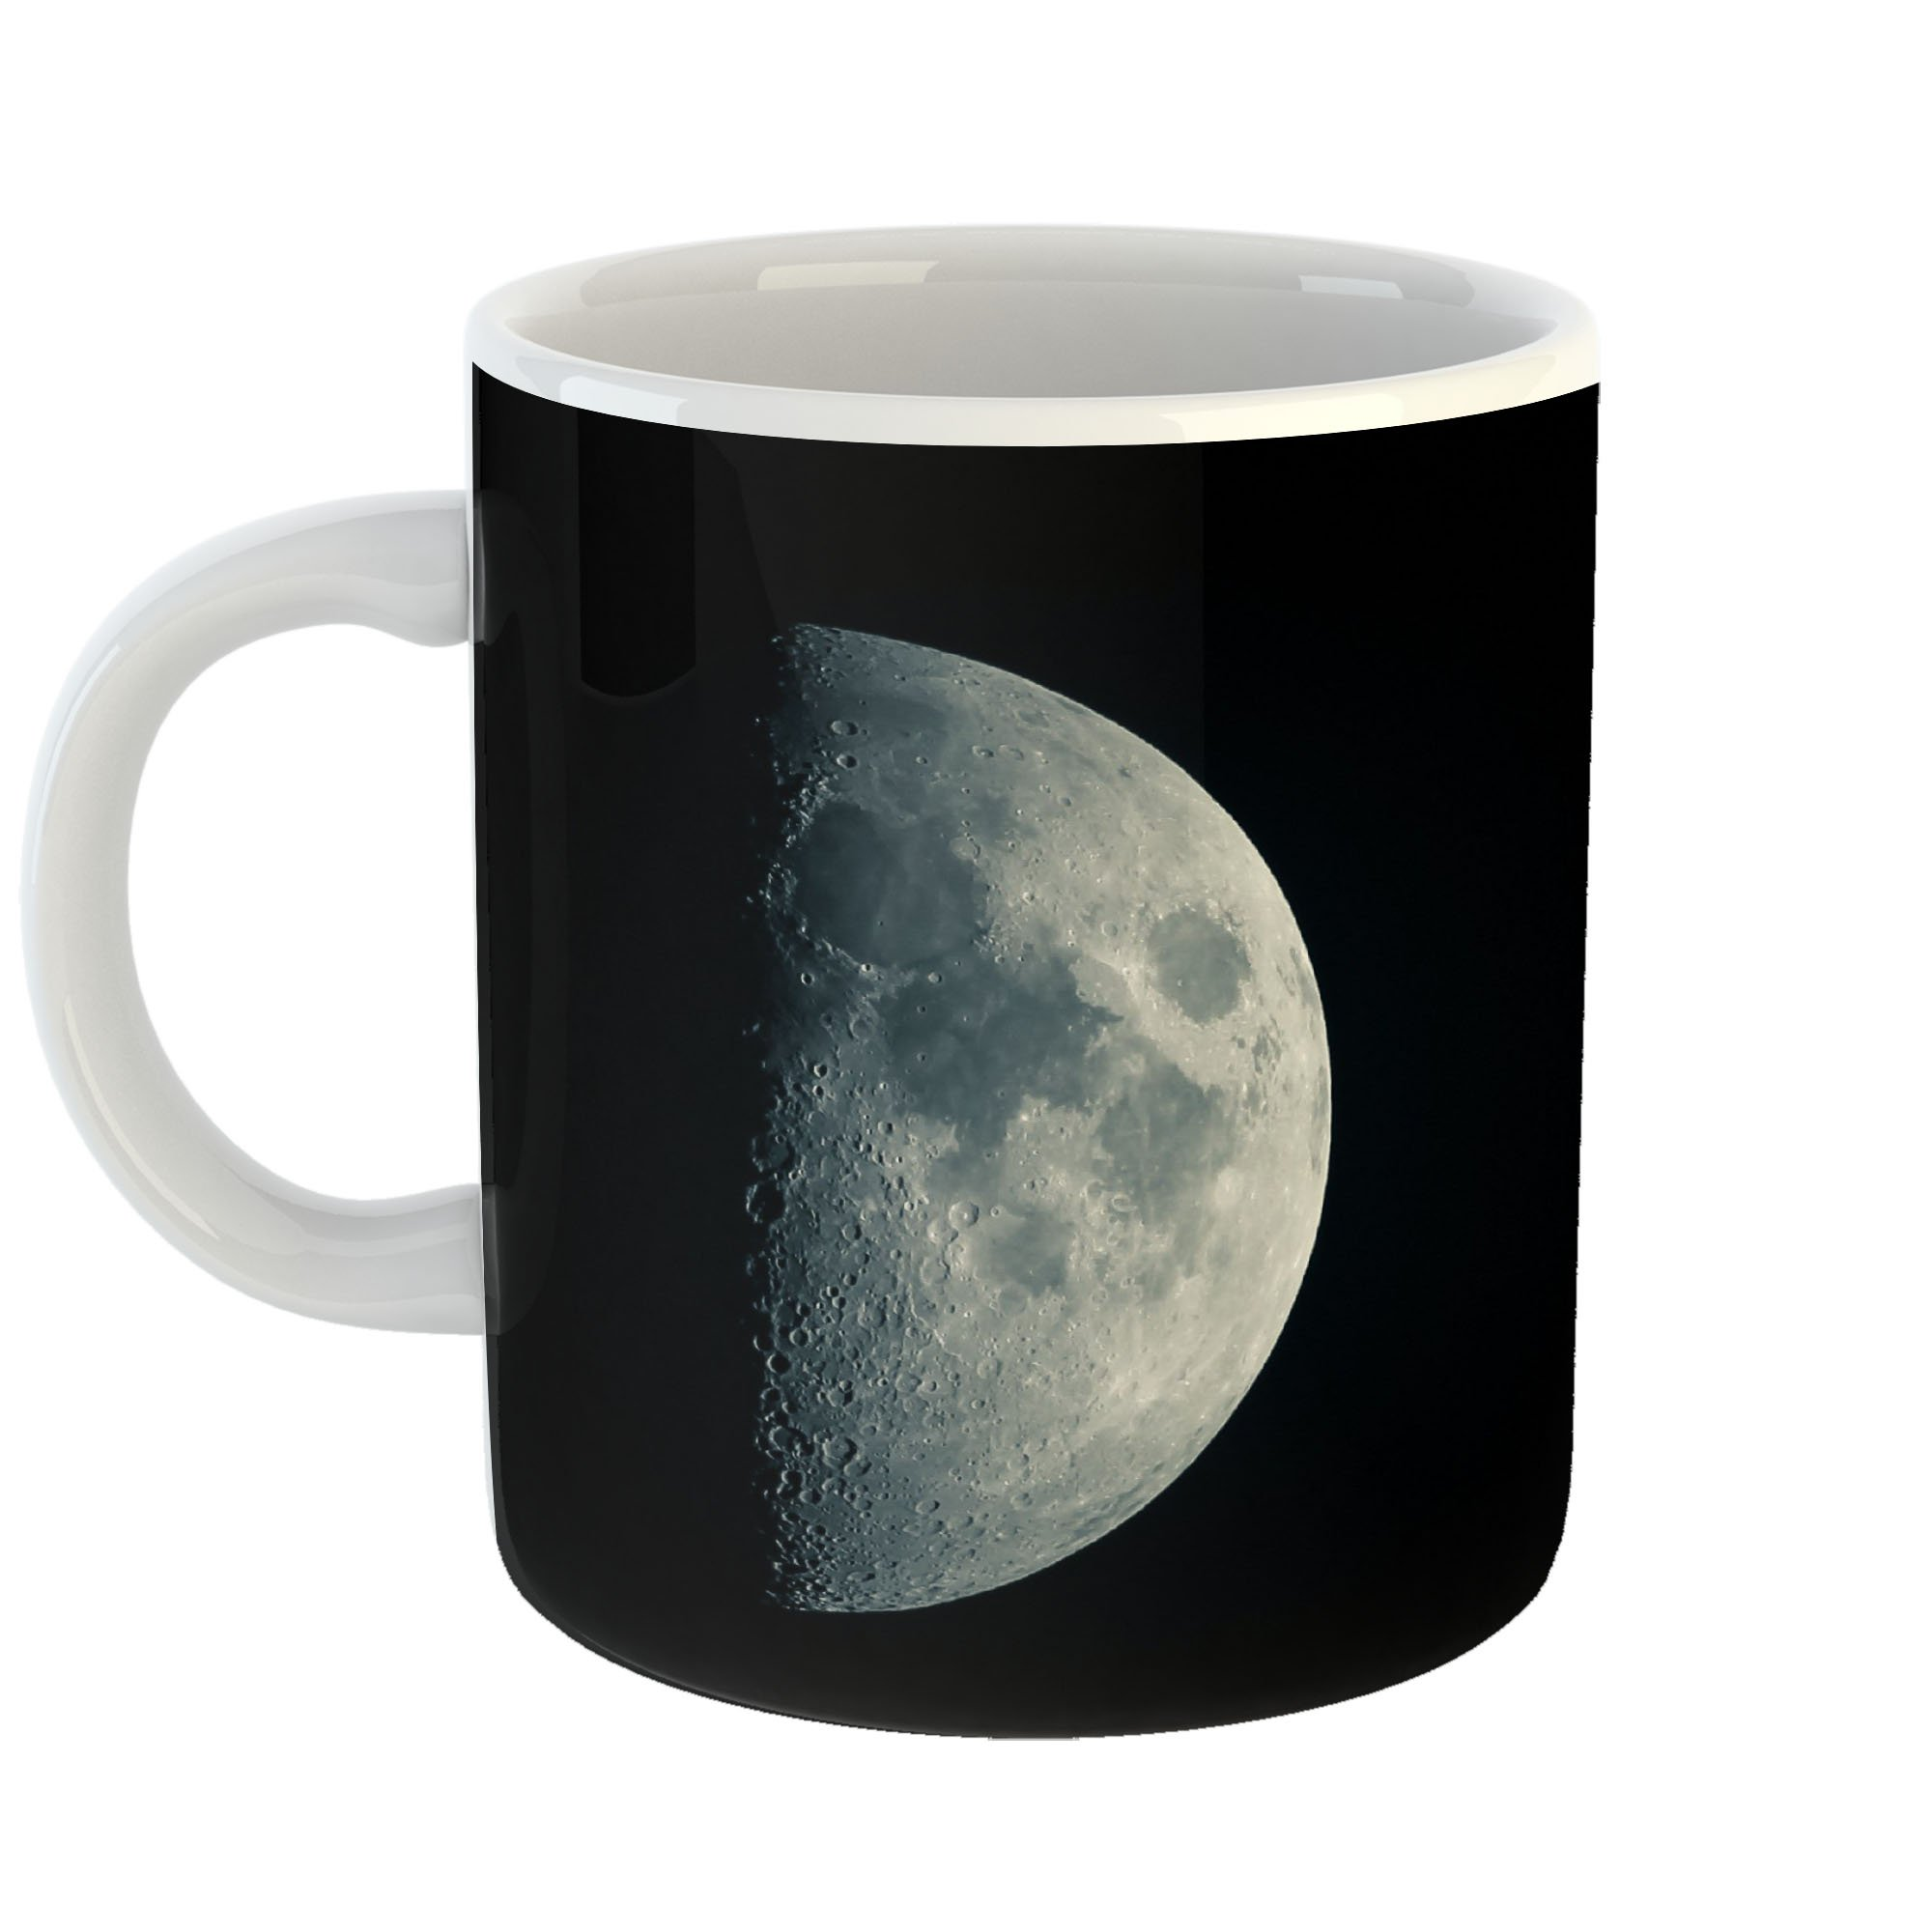 Westlake Art - Moon Solar - 11oz Coffee Cup Mug - Modern Picture Photography Artwork Home Office Birthday Gift - 11 Ounce (1BB1-46BB3)